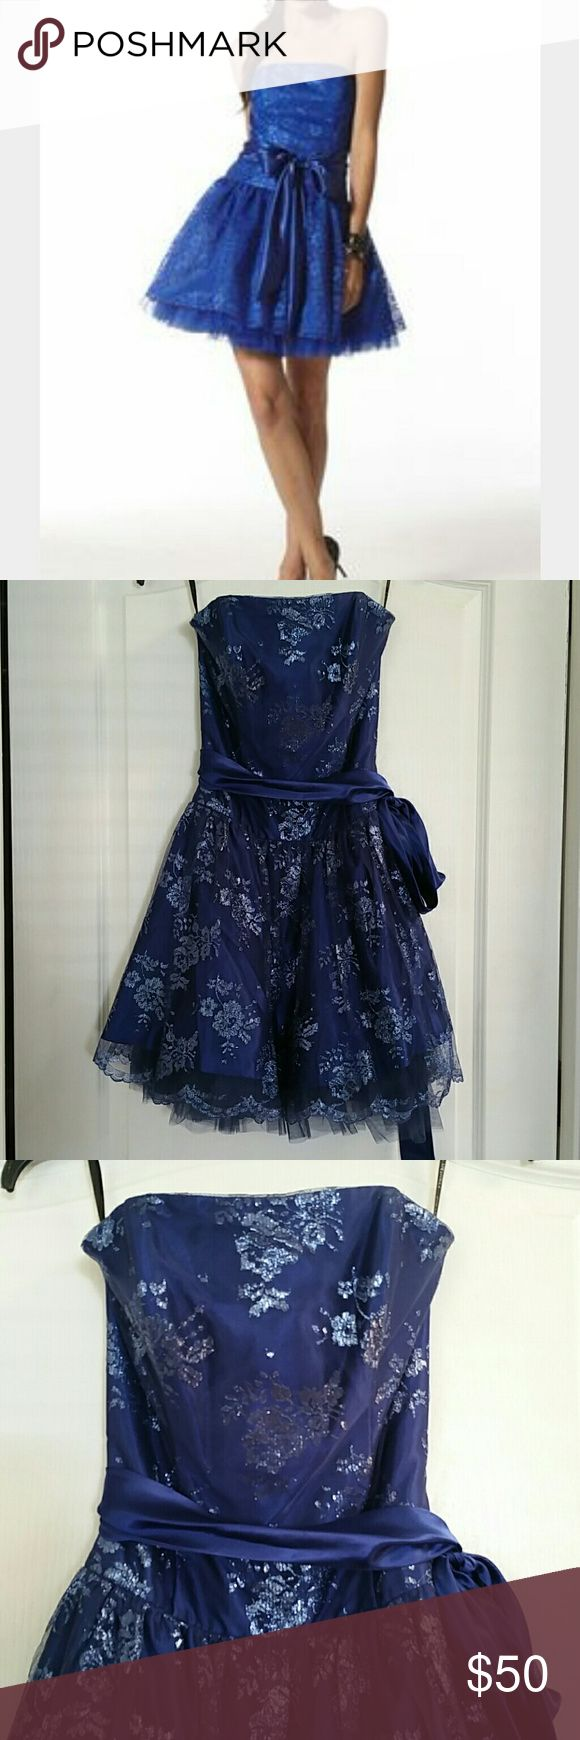 *Weekend Sale!!* Very pretty royal blue dress Flattering dress with lace and tulle. Tie at waist. Hidden zipper at back. In excellent condition, worn once for a wedding. Jessica McClintock Dresses Wedding